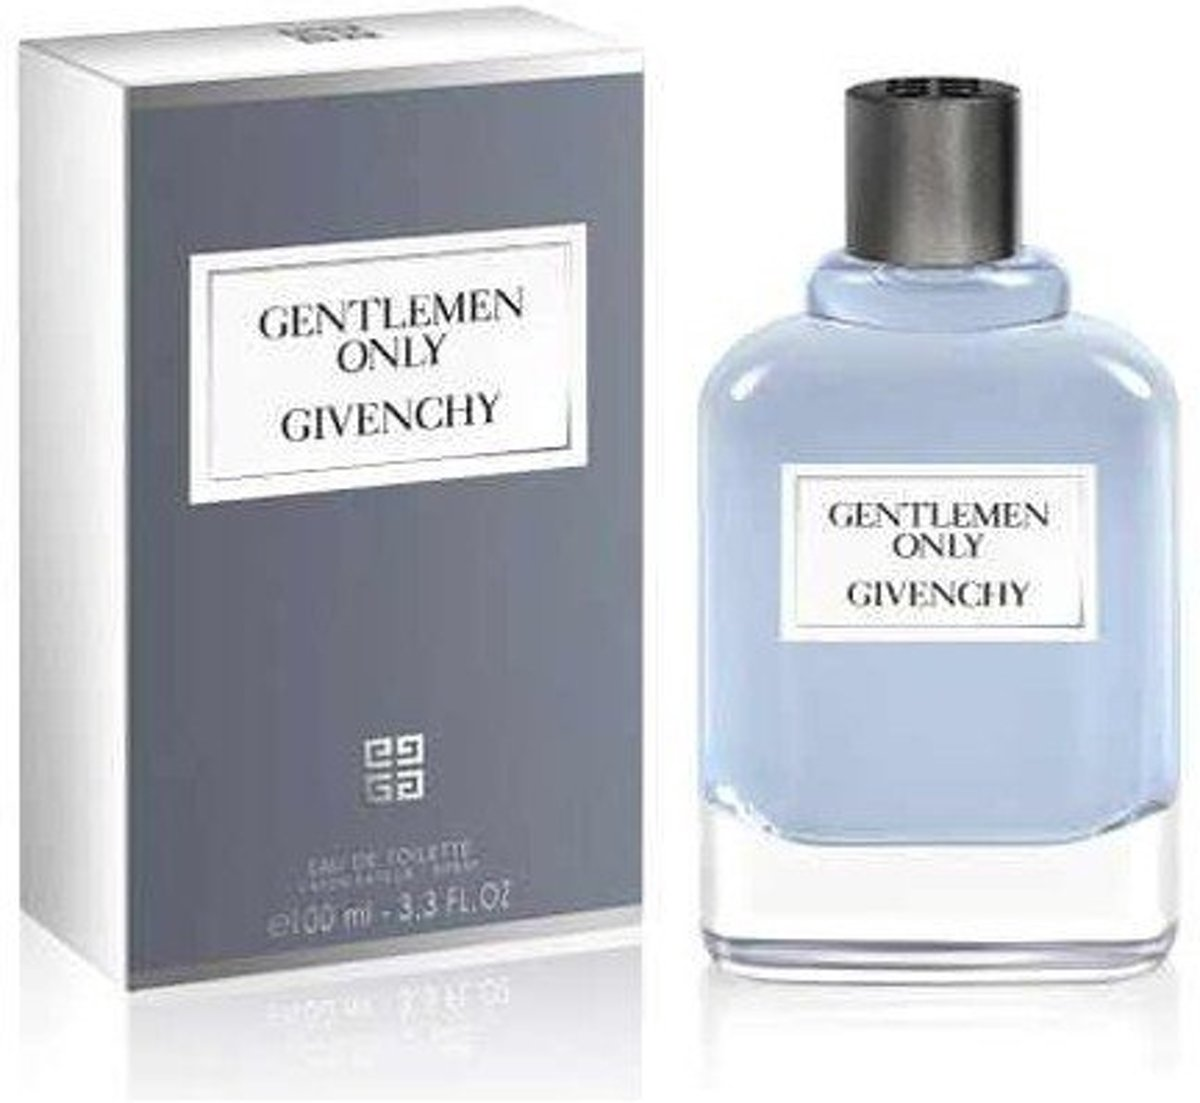 Givenchy Gentleman Only  - 100 ml - Eau de toilette